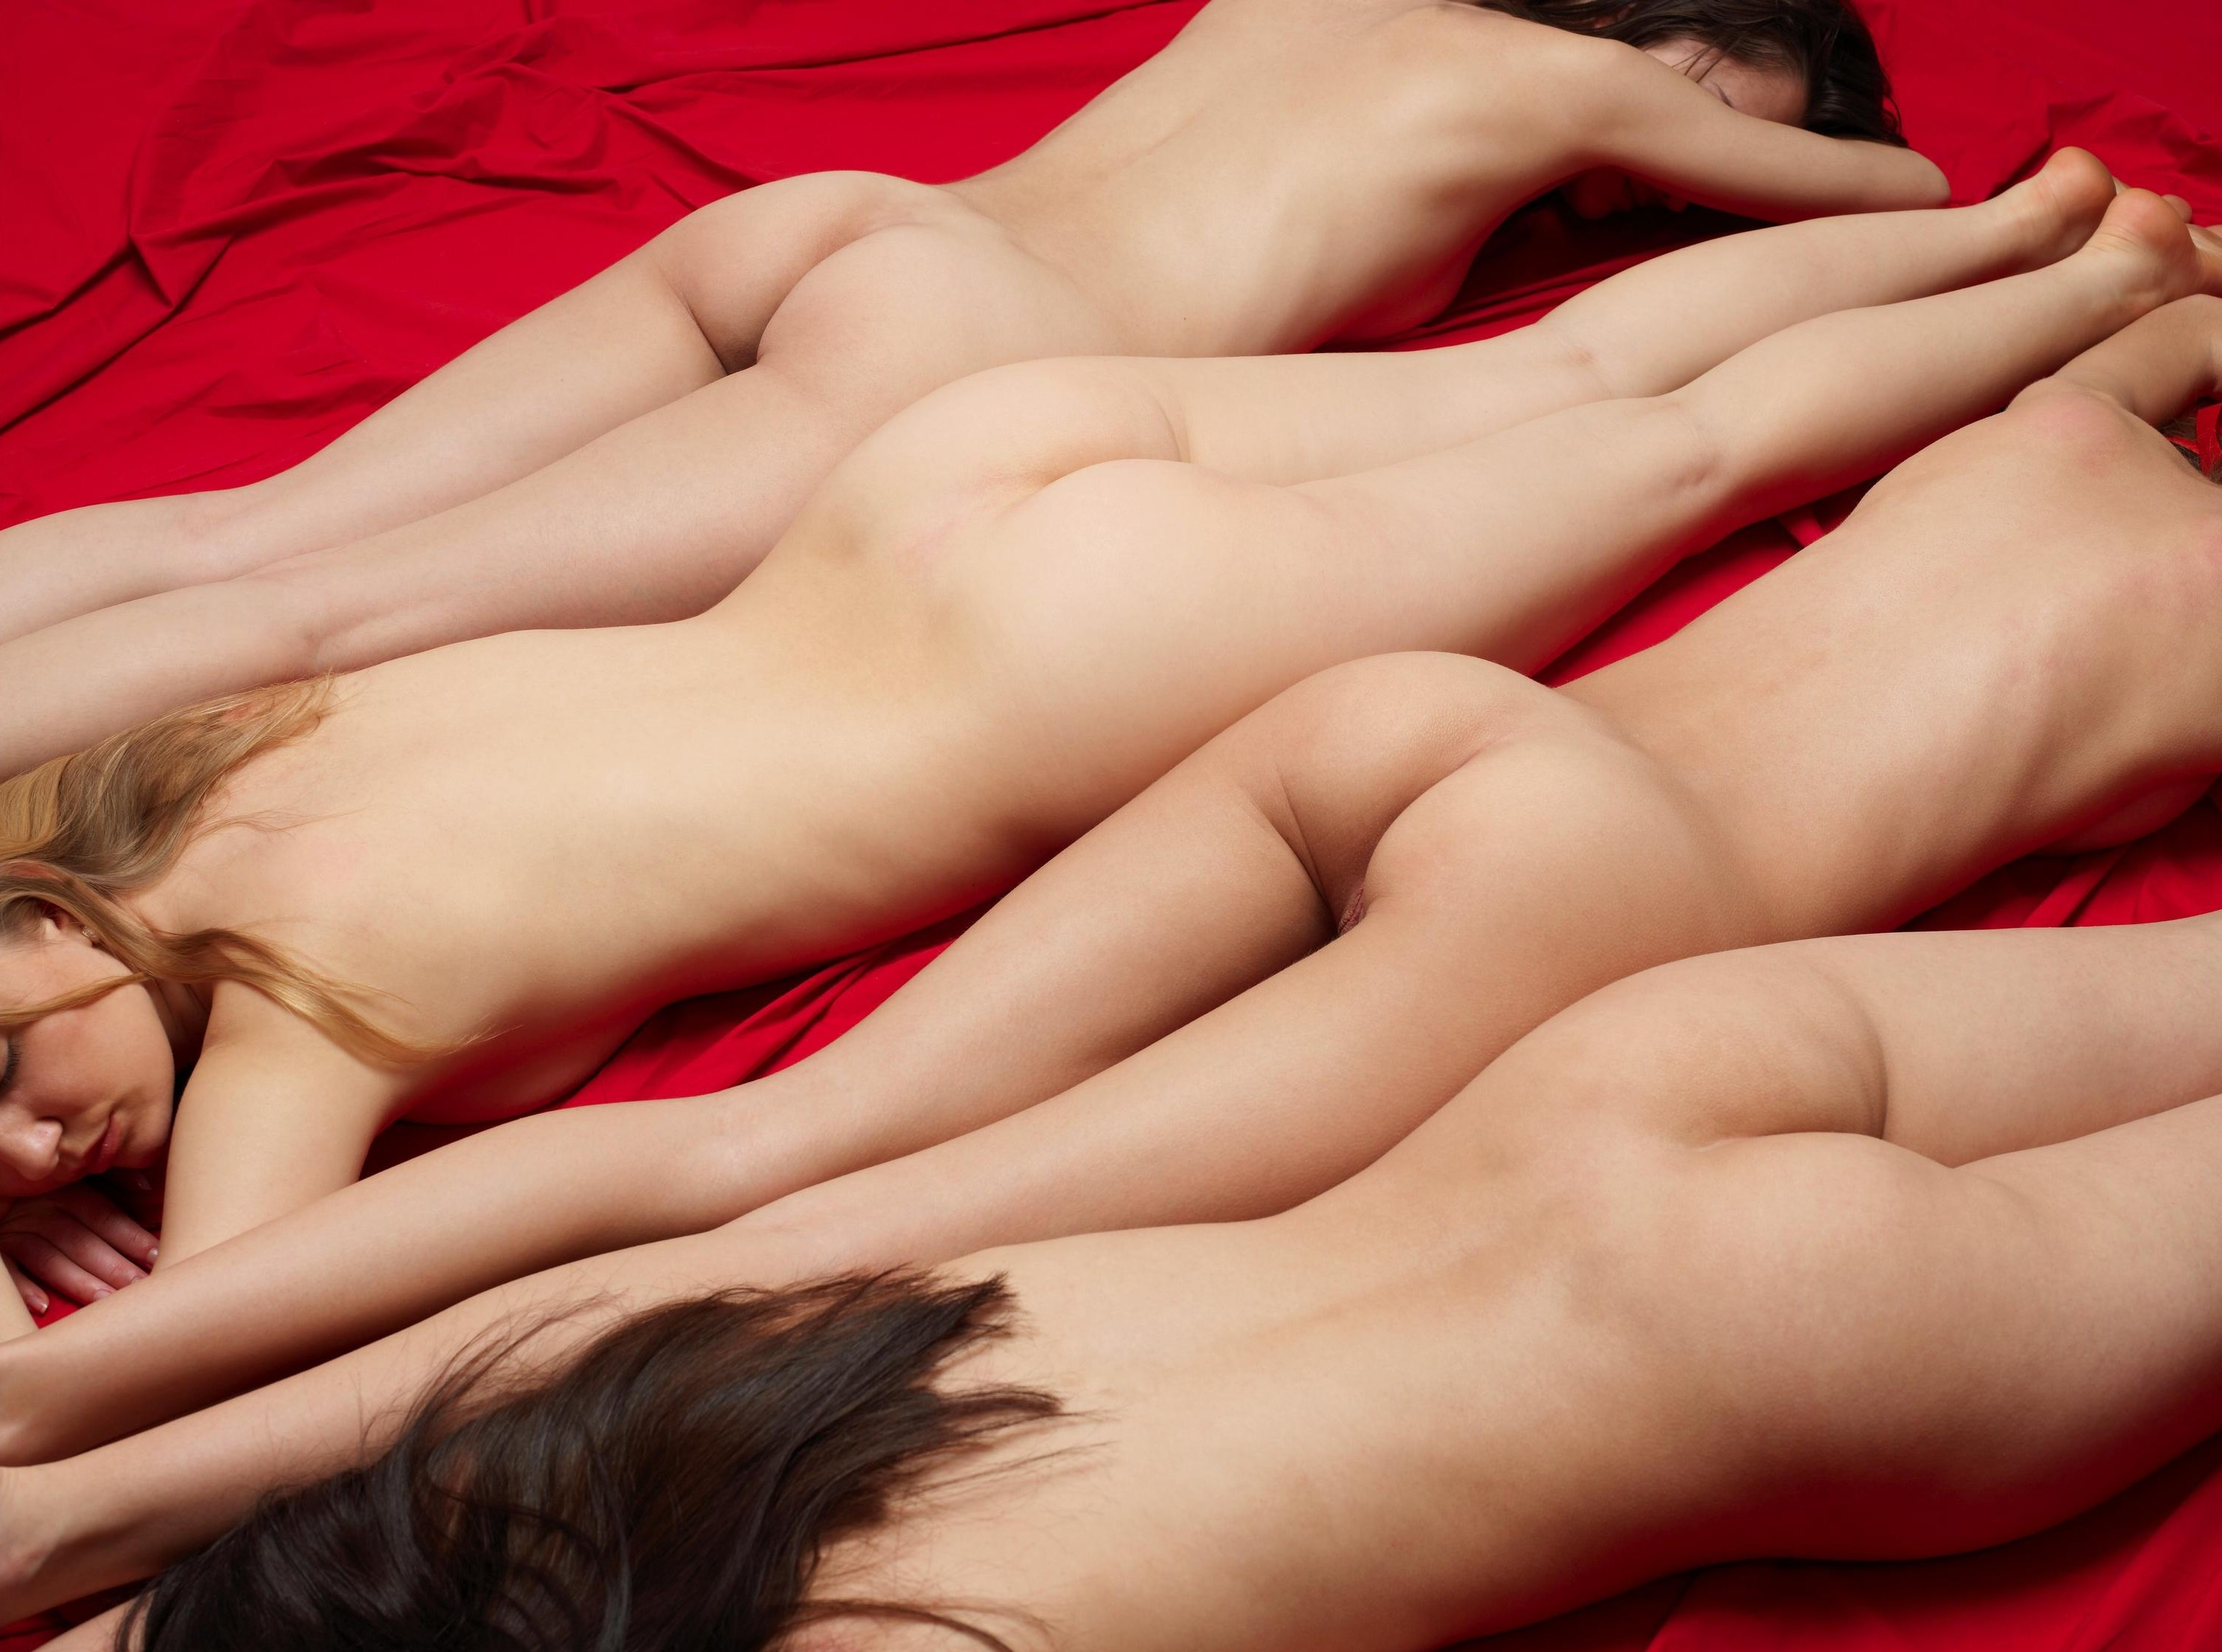 Message, Azeri girls naked booties Likely... The